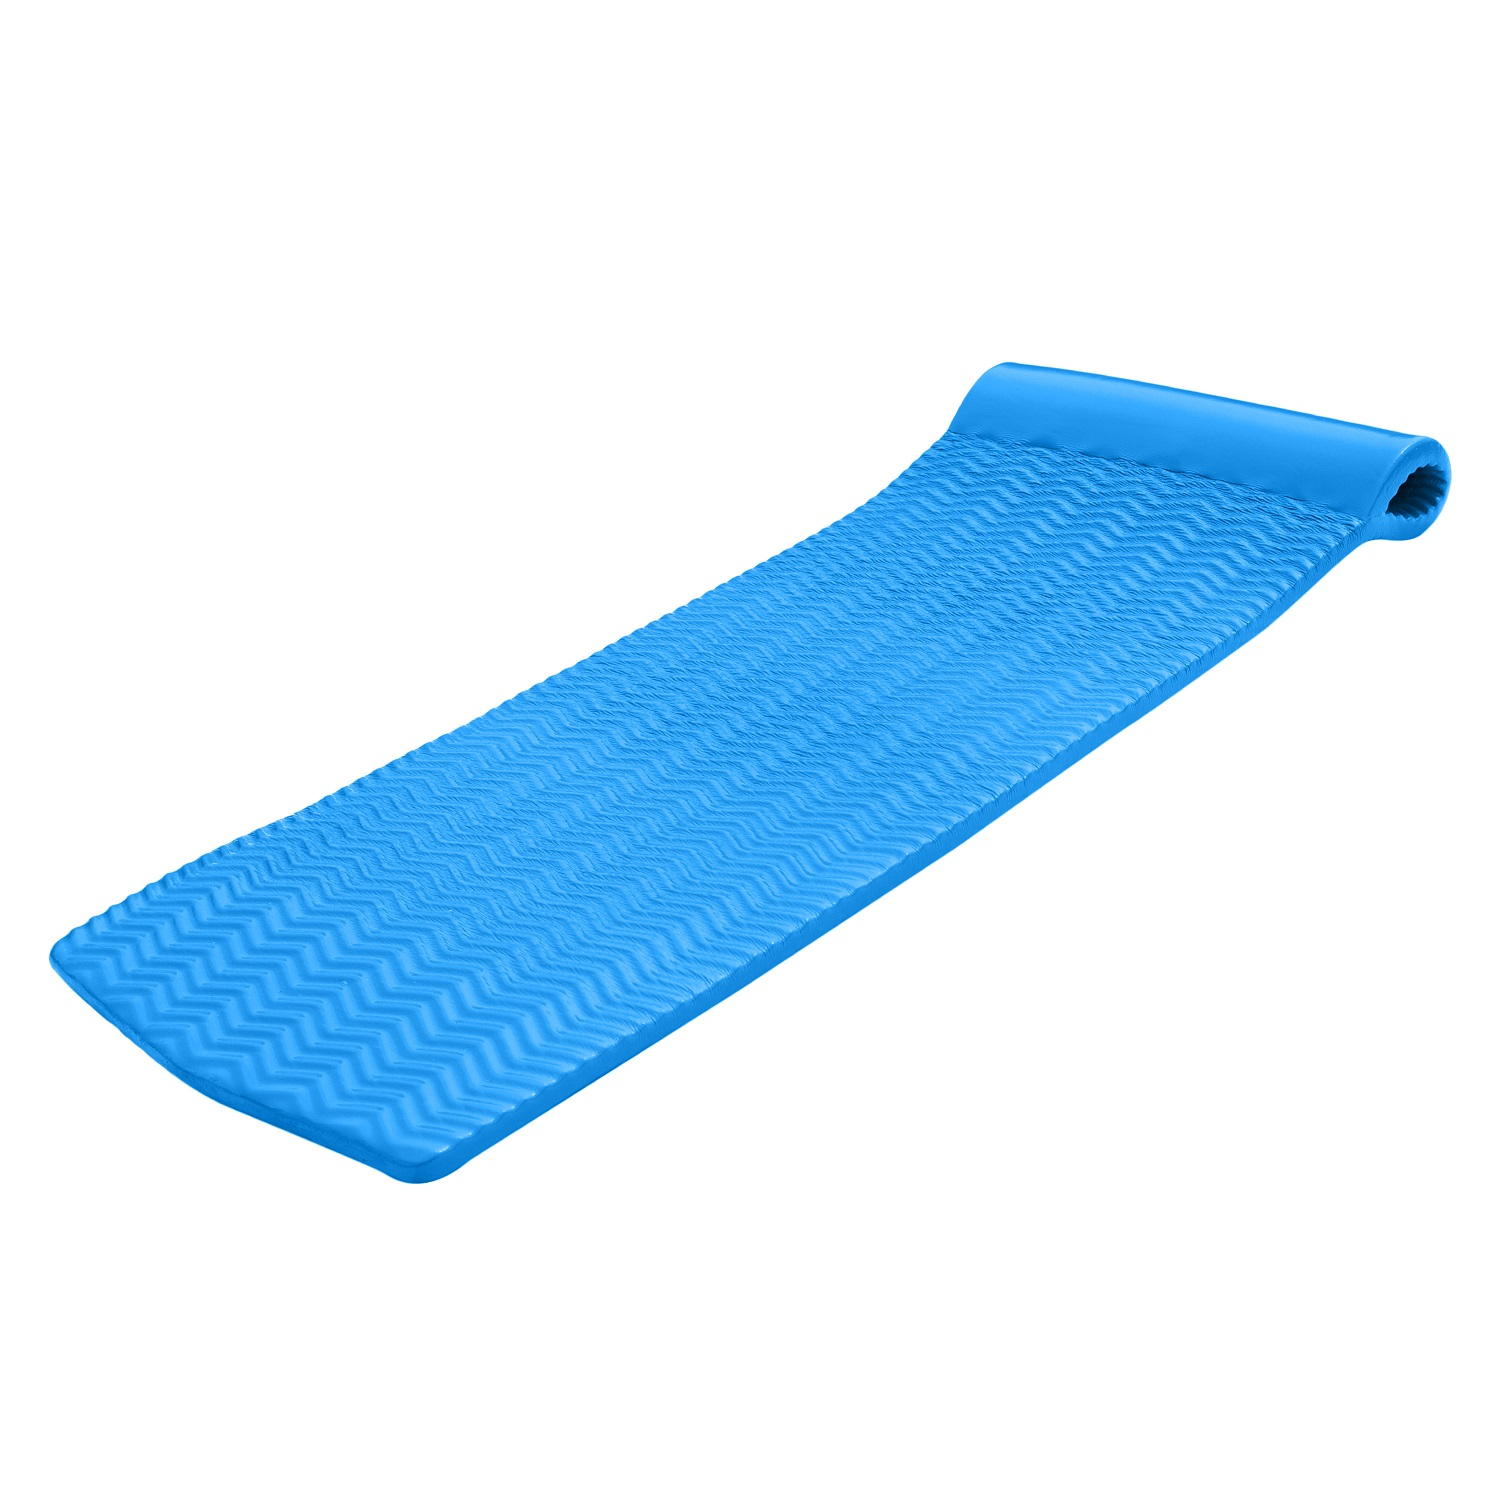 TRC Serenity Pool Float Bahama Blue